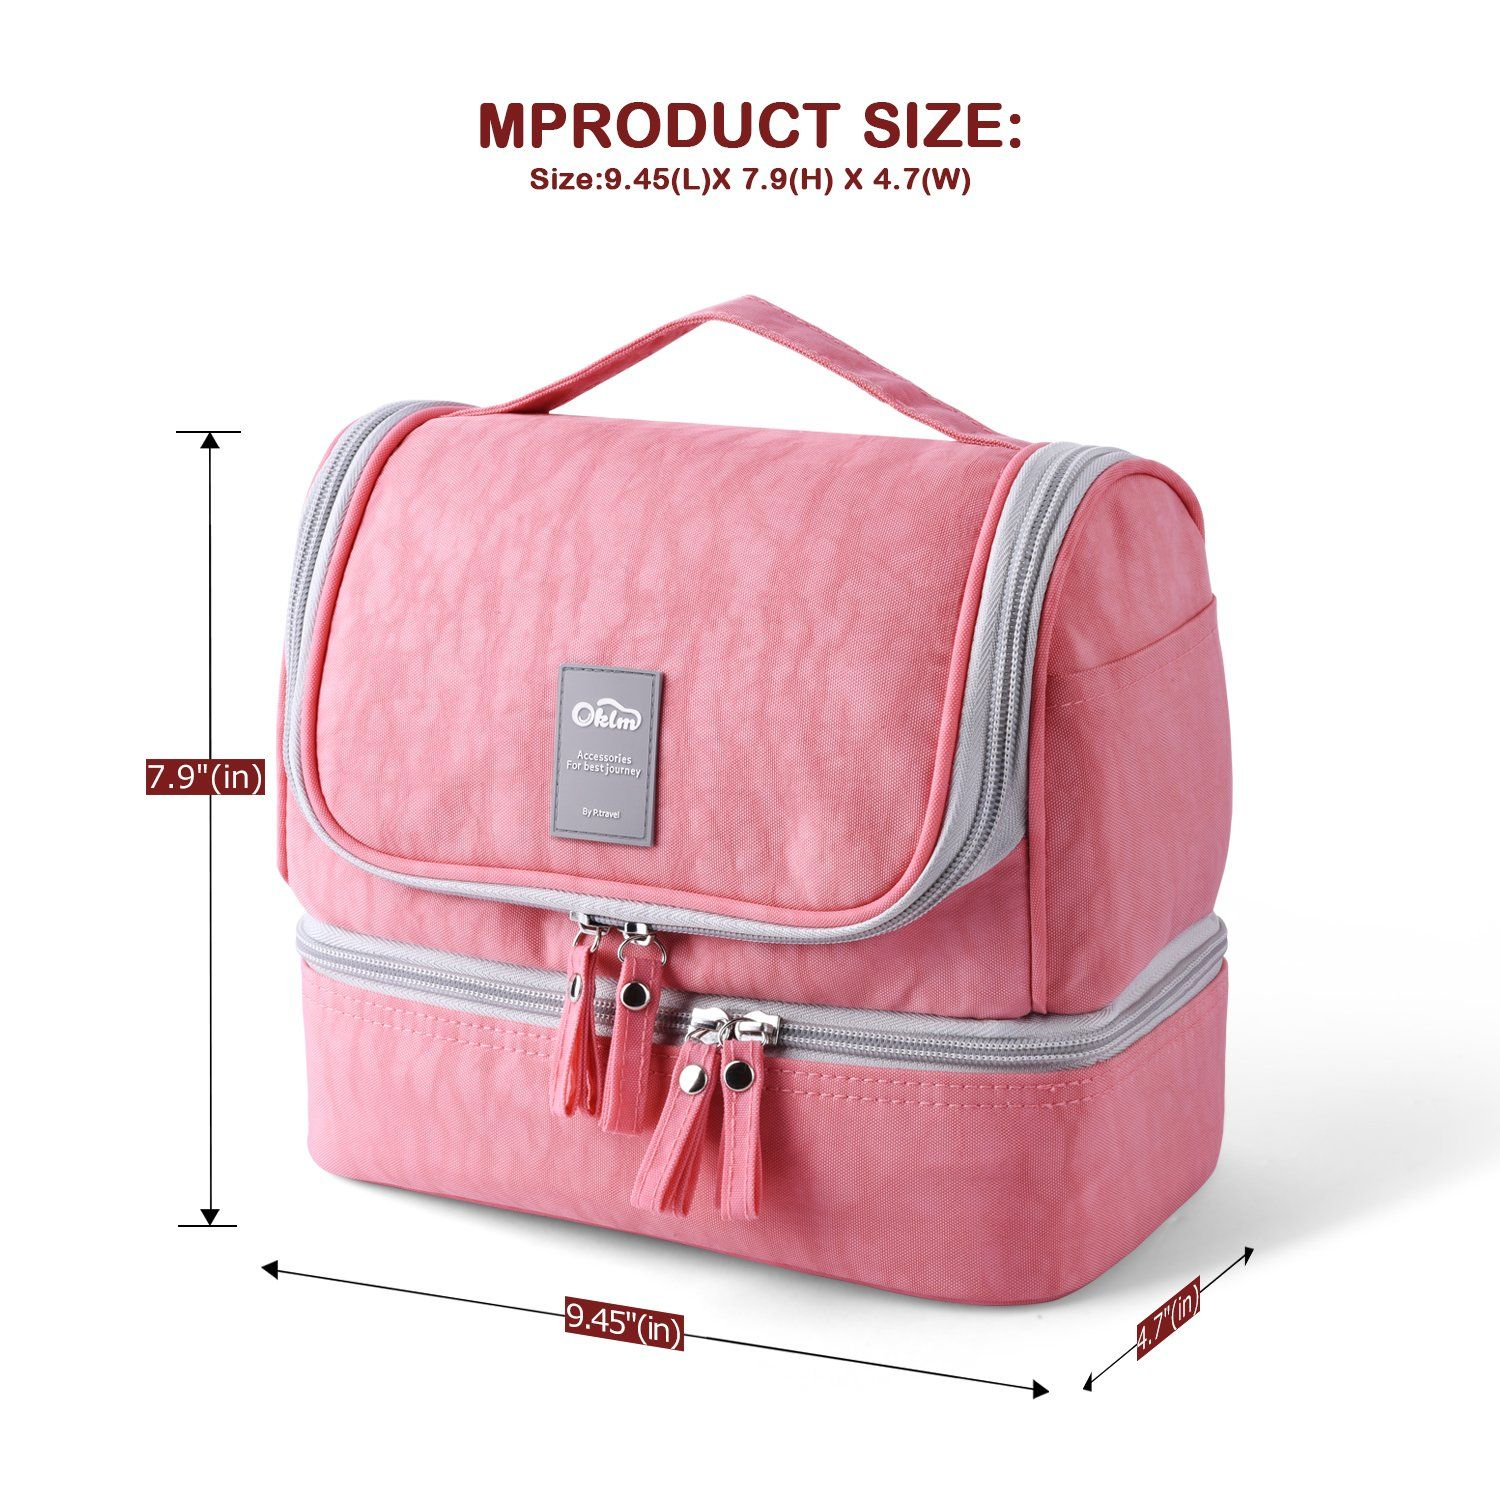 9d6c01e6a119 Designer Hanging Toiletry Bag Travel Cosmetics Bag by HANKCLES ...